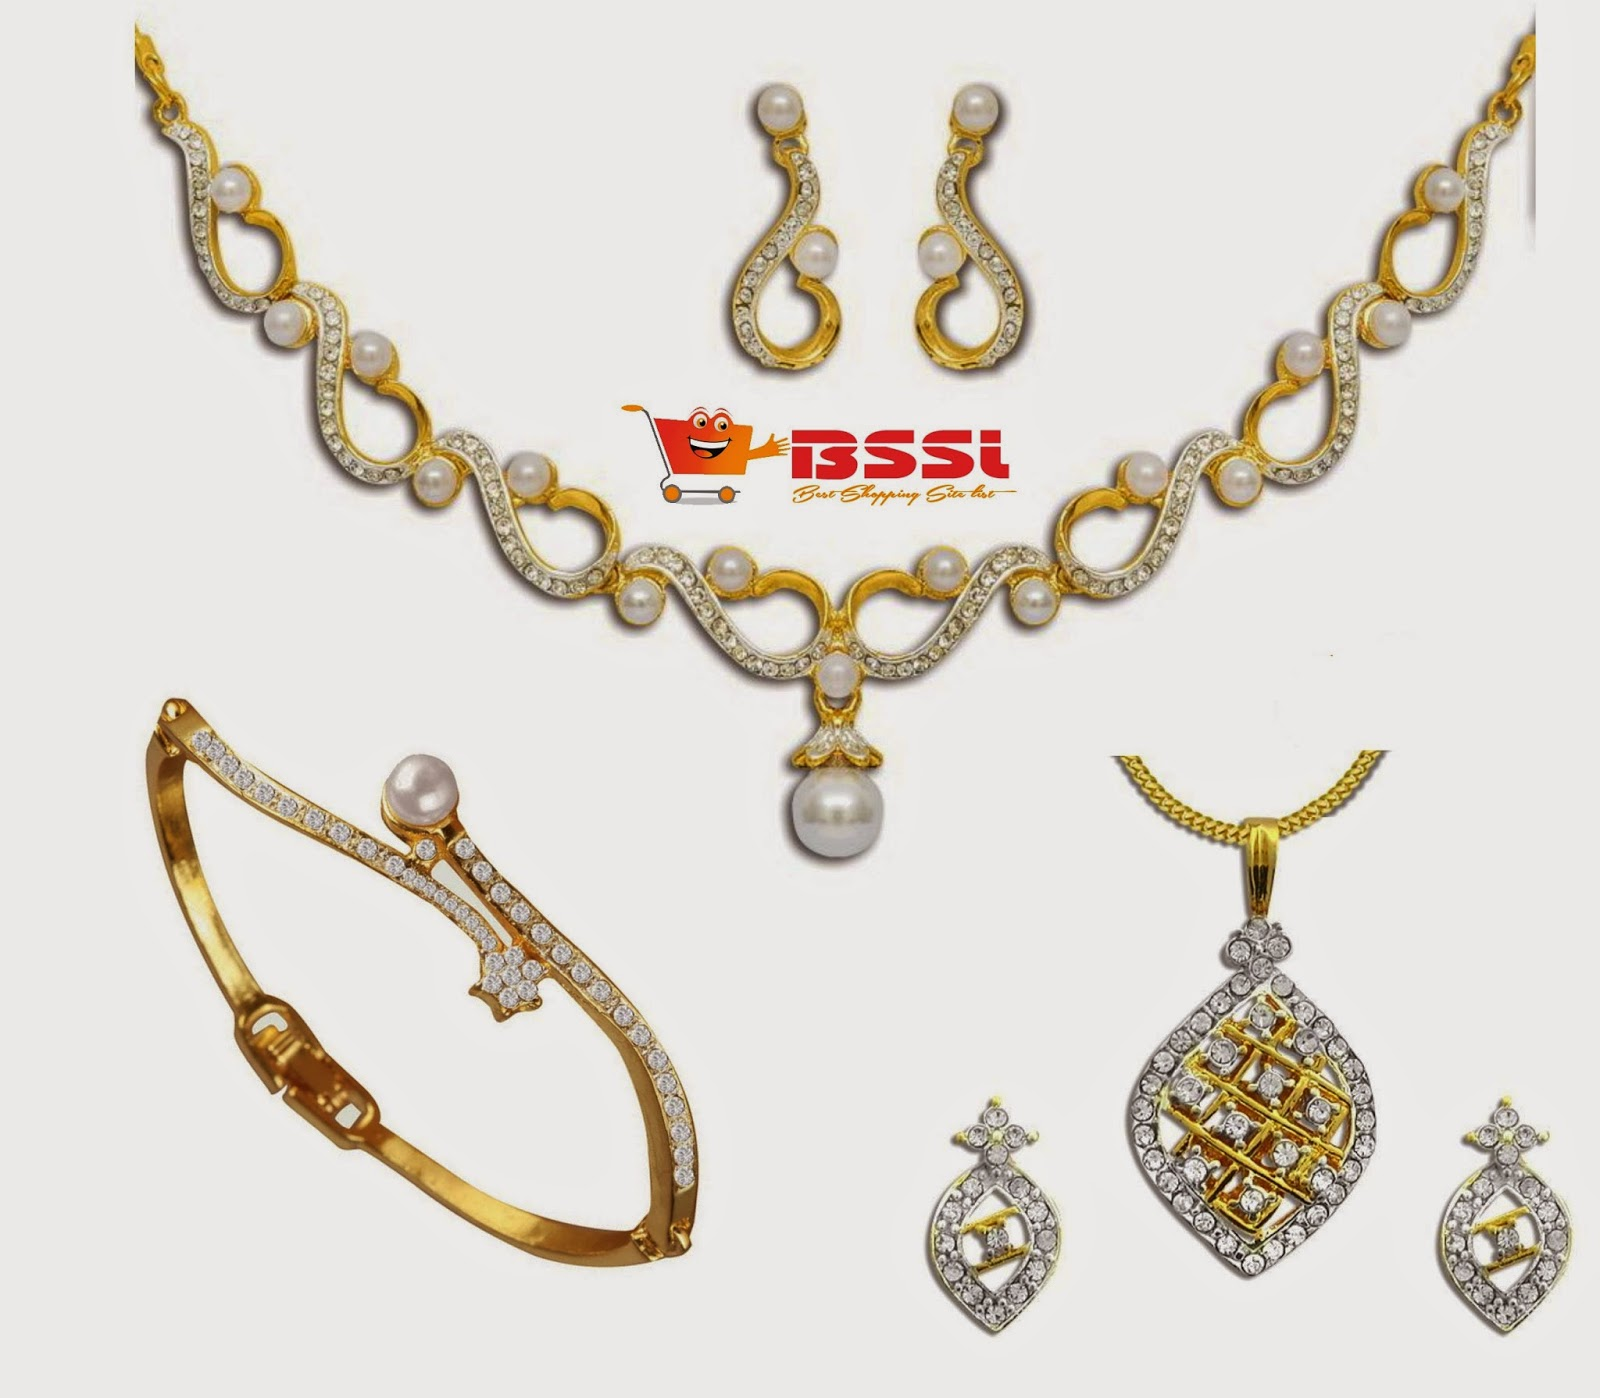 in saharanpurweb saharanpur shop shopping jewellery d